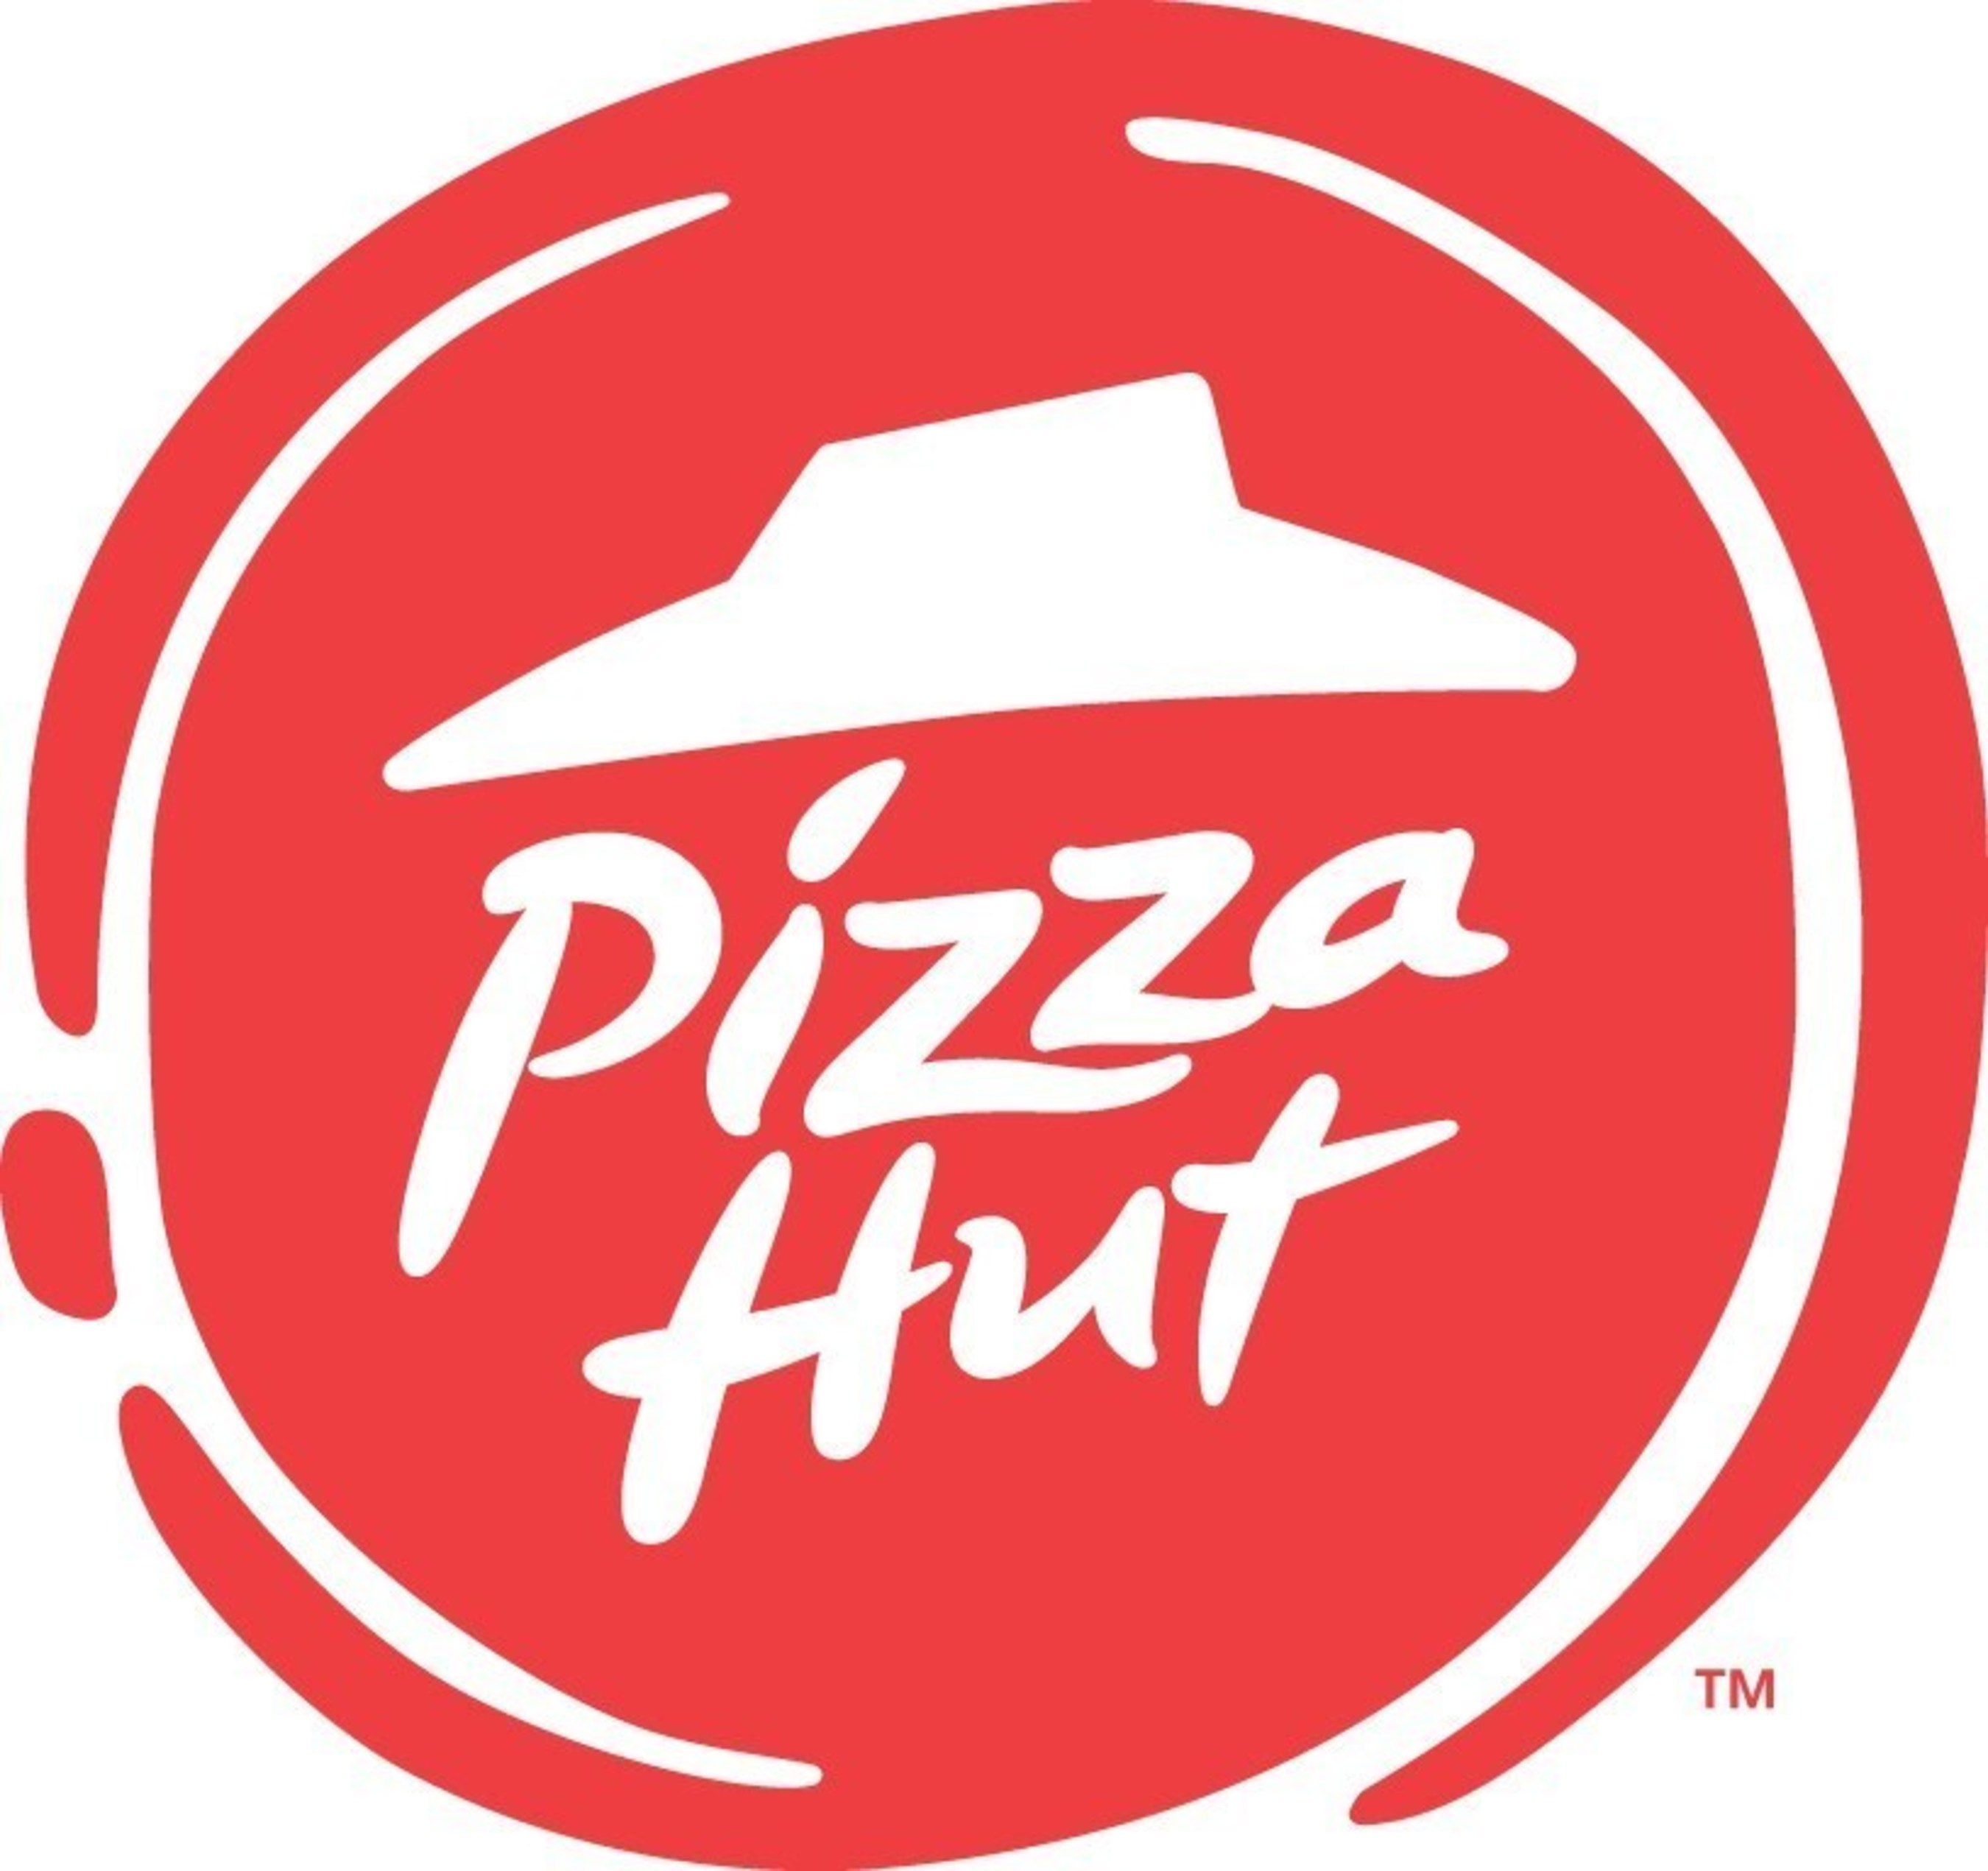 pizza hut announces new brand standards for ingredients